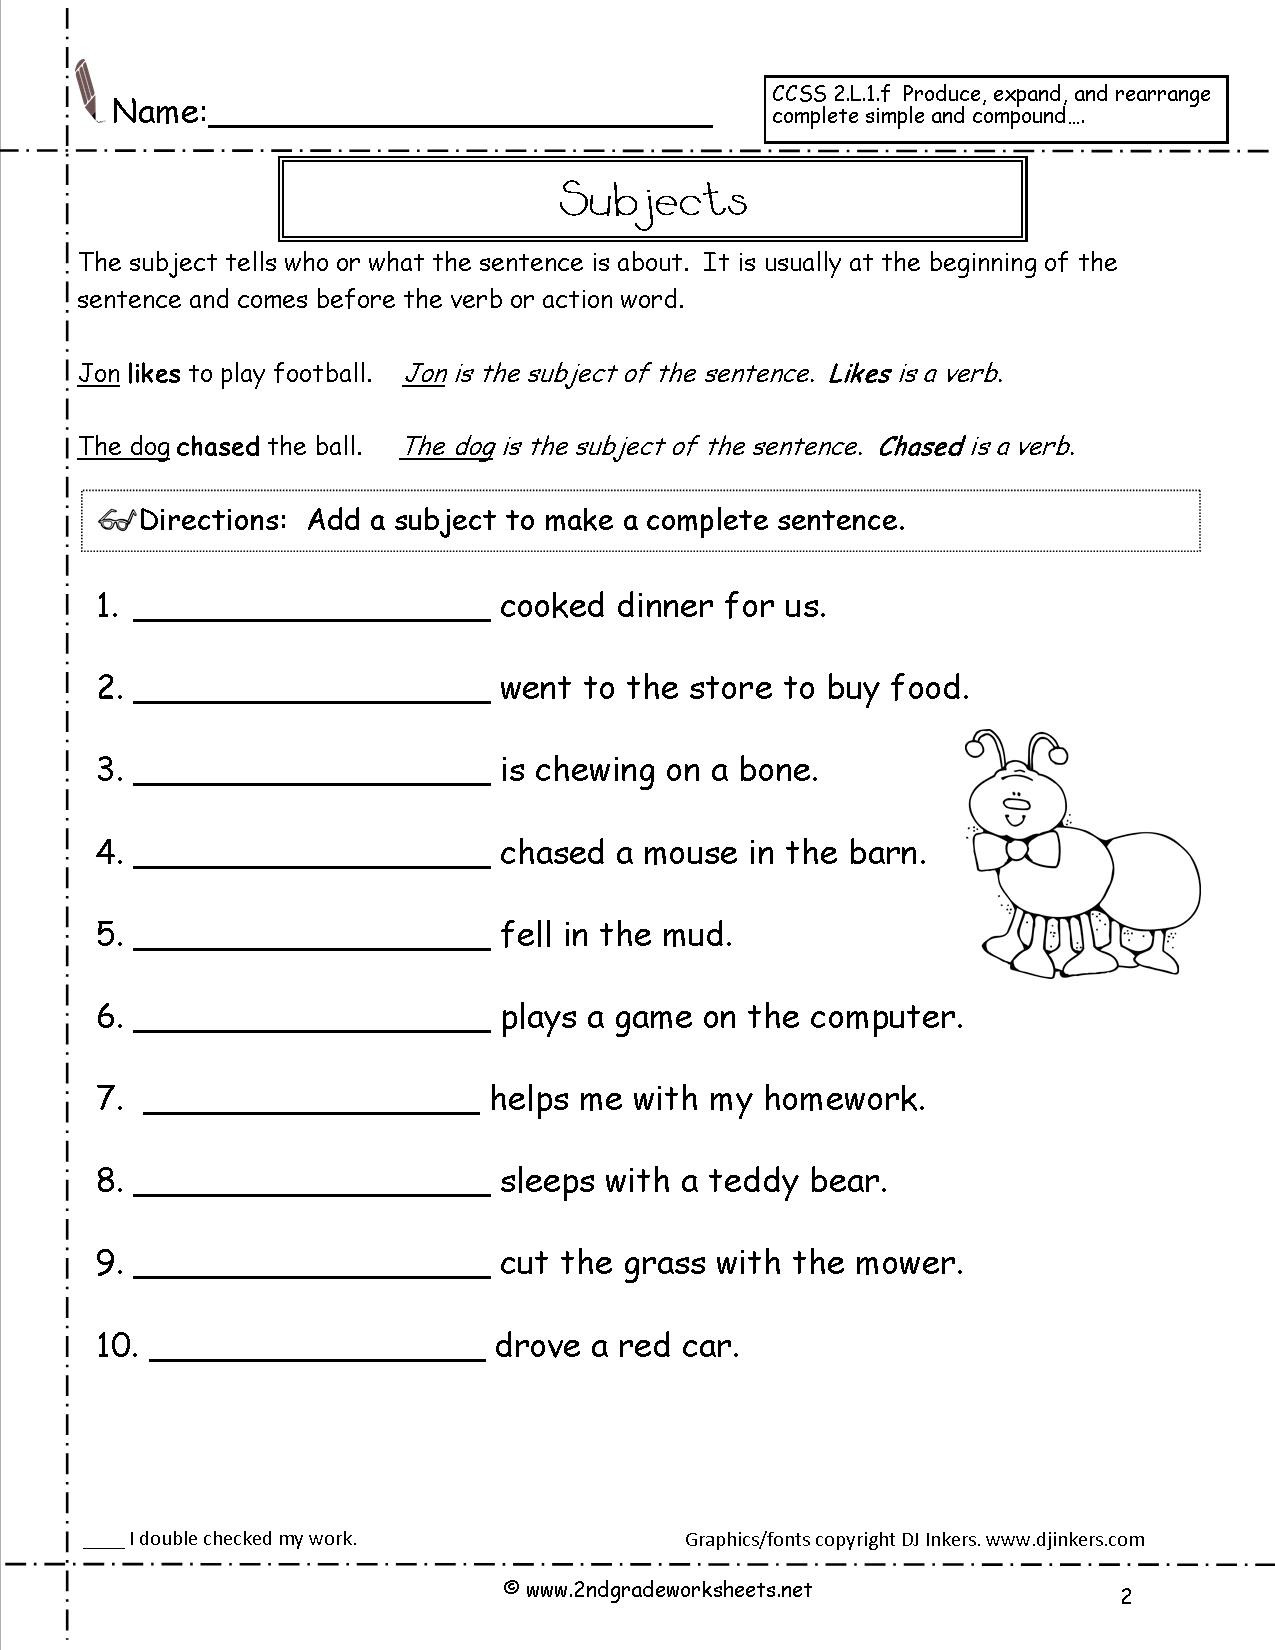 Writing Complete Sentences Worksheets Basic Math Words Printable Cursive Worksheets 3rd Grade